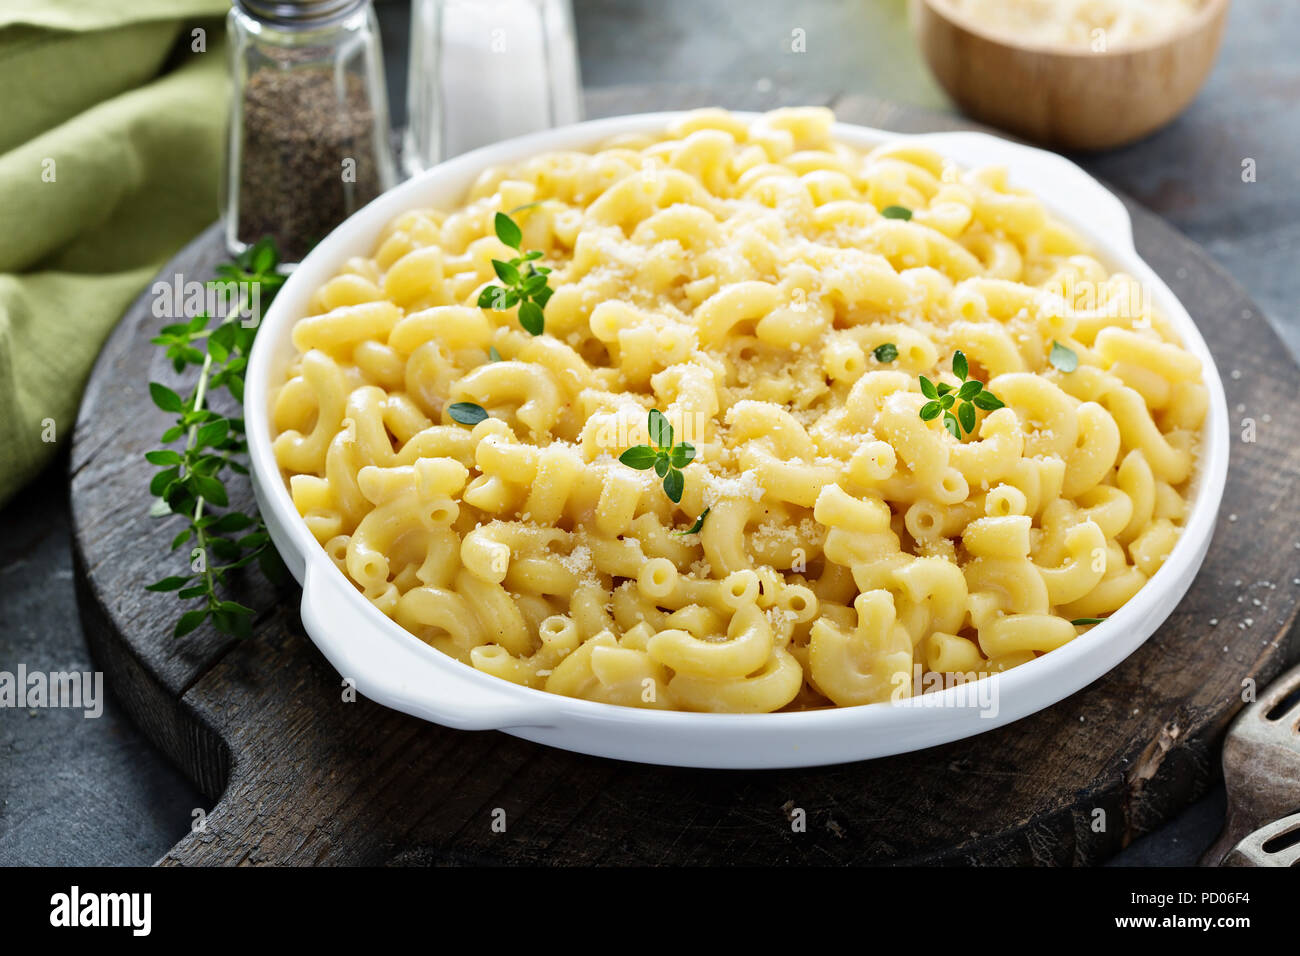 Macaroni and cheese on a white plate - Stock Image